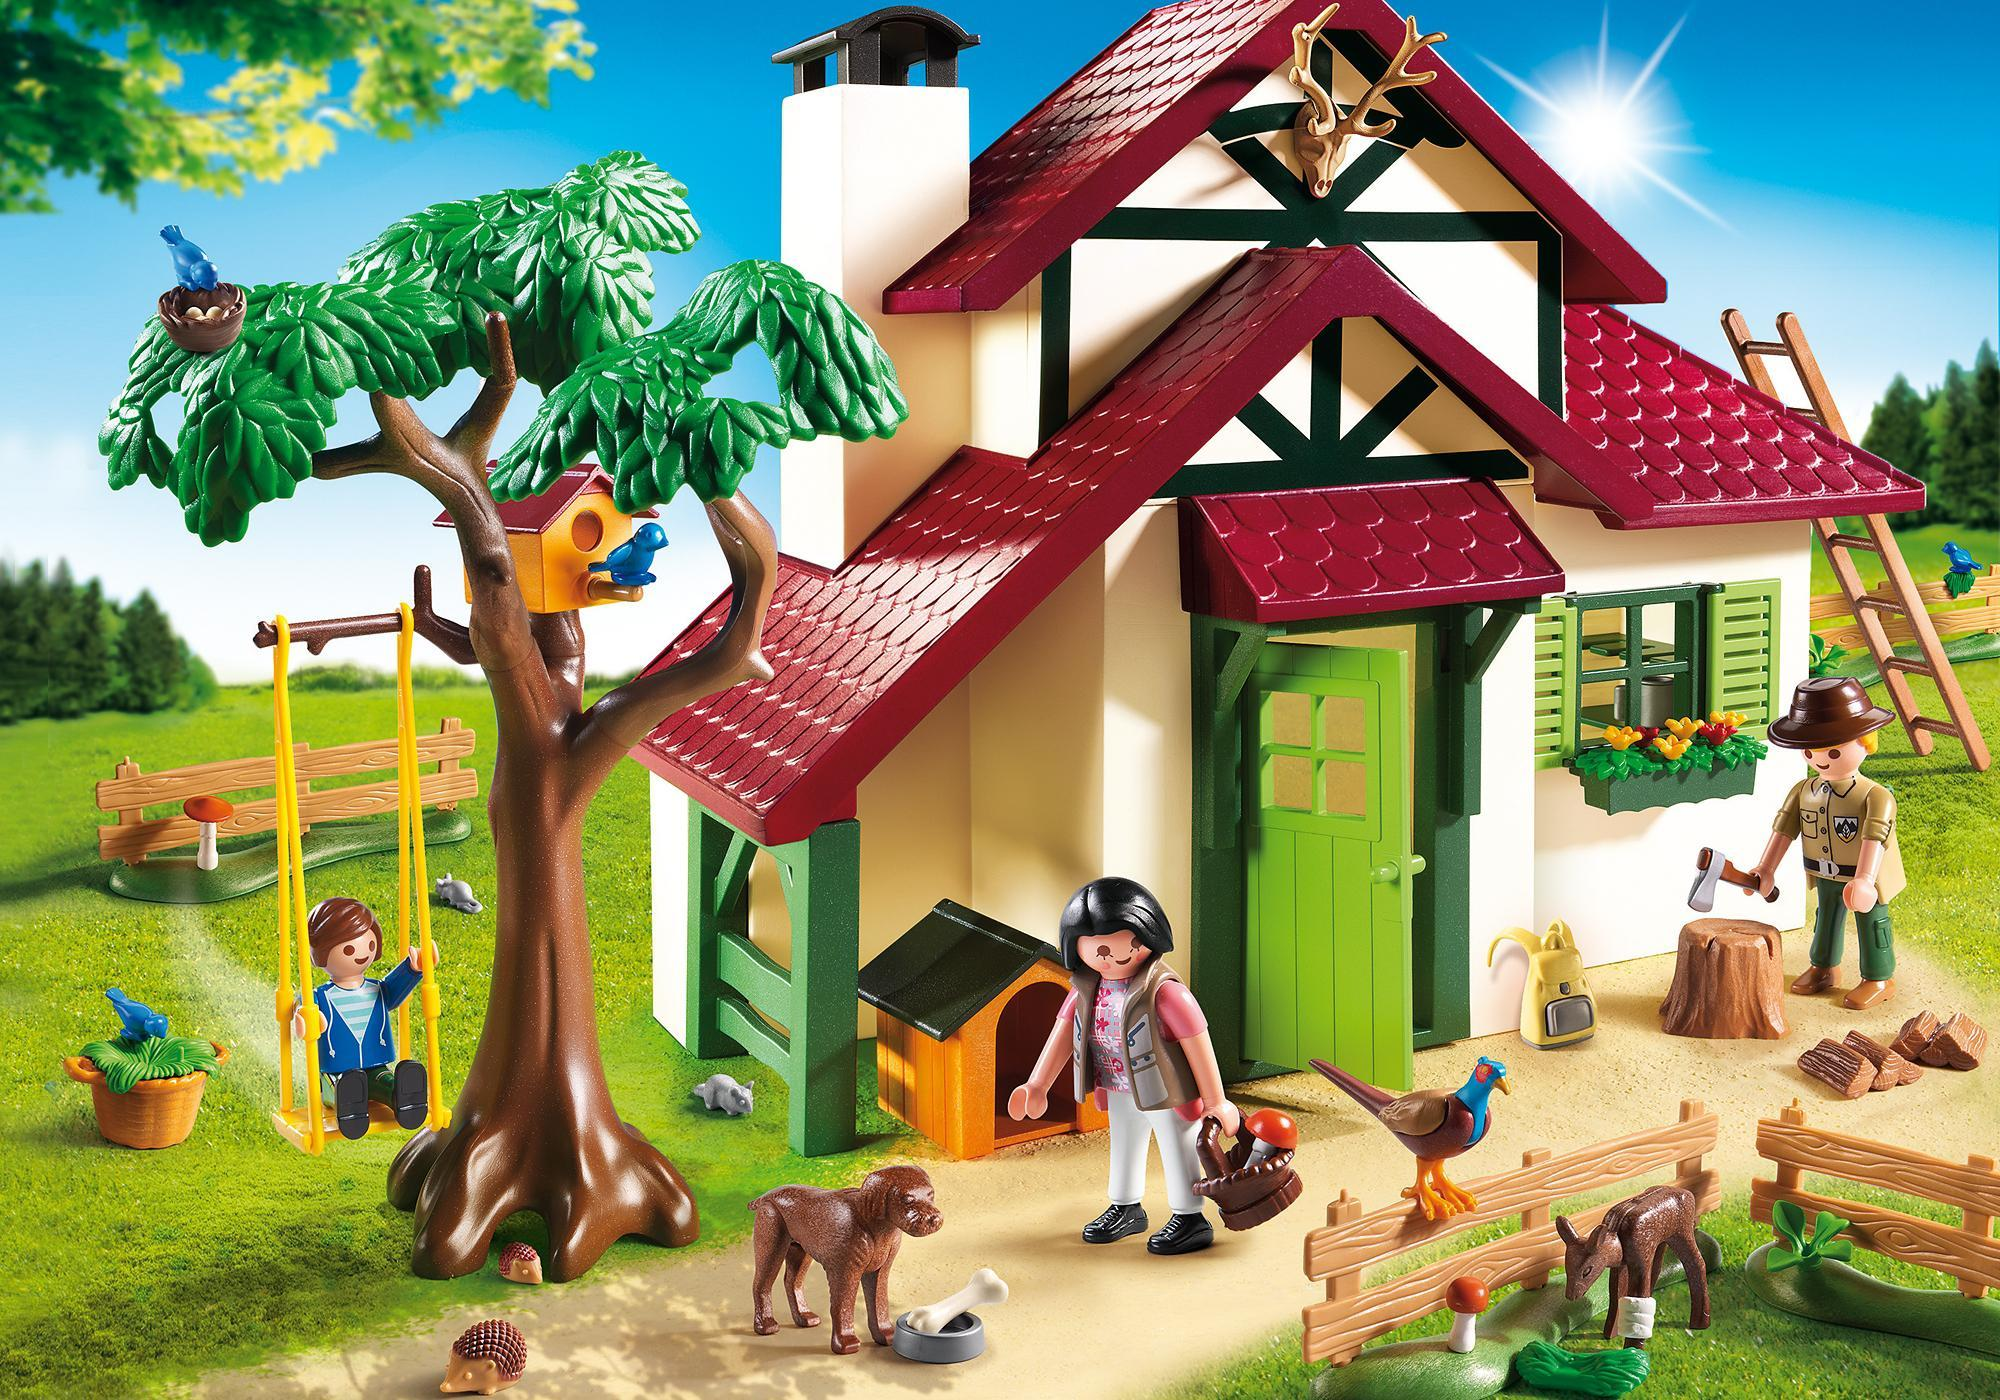 http://media.playmobil.com/i/playmobil/6811_product_detail/Maison forestière